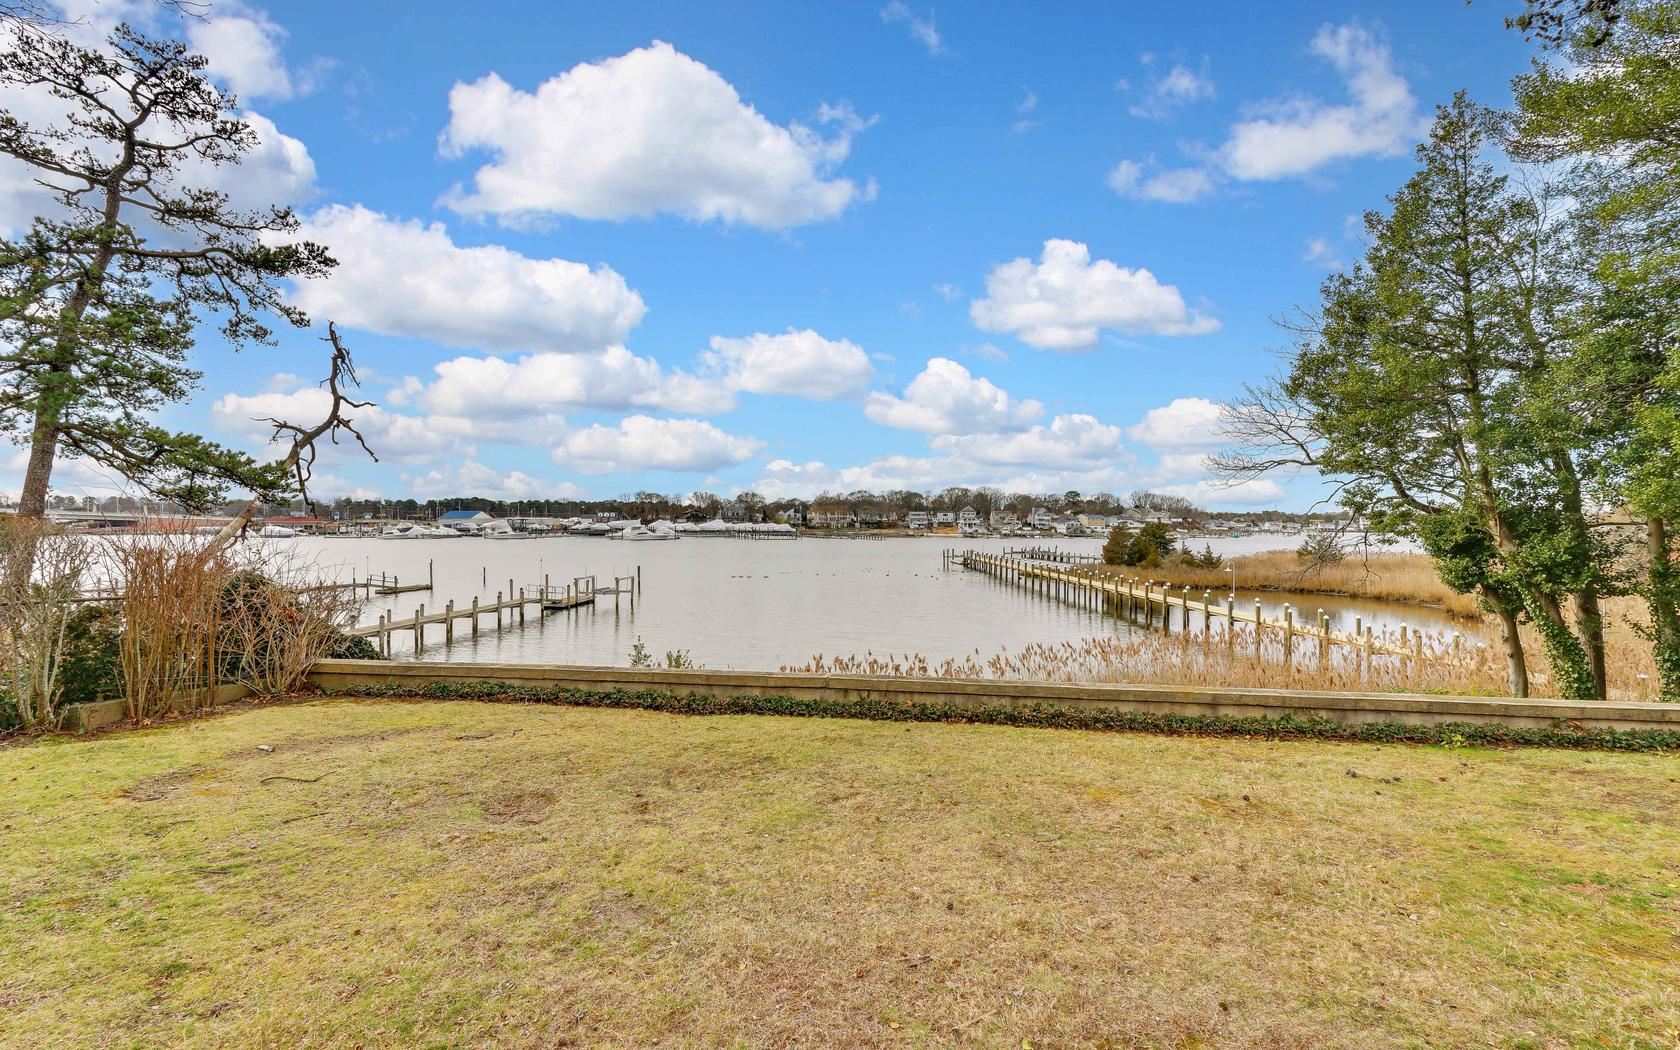 Single Family Home for Sale at Tranquil Manasquan Riverfront 2639 River Rd Wall, New Jersey 08736 United States